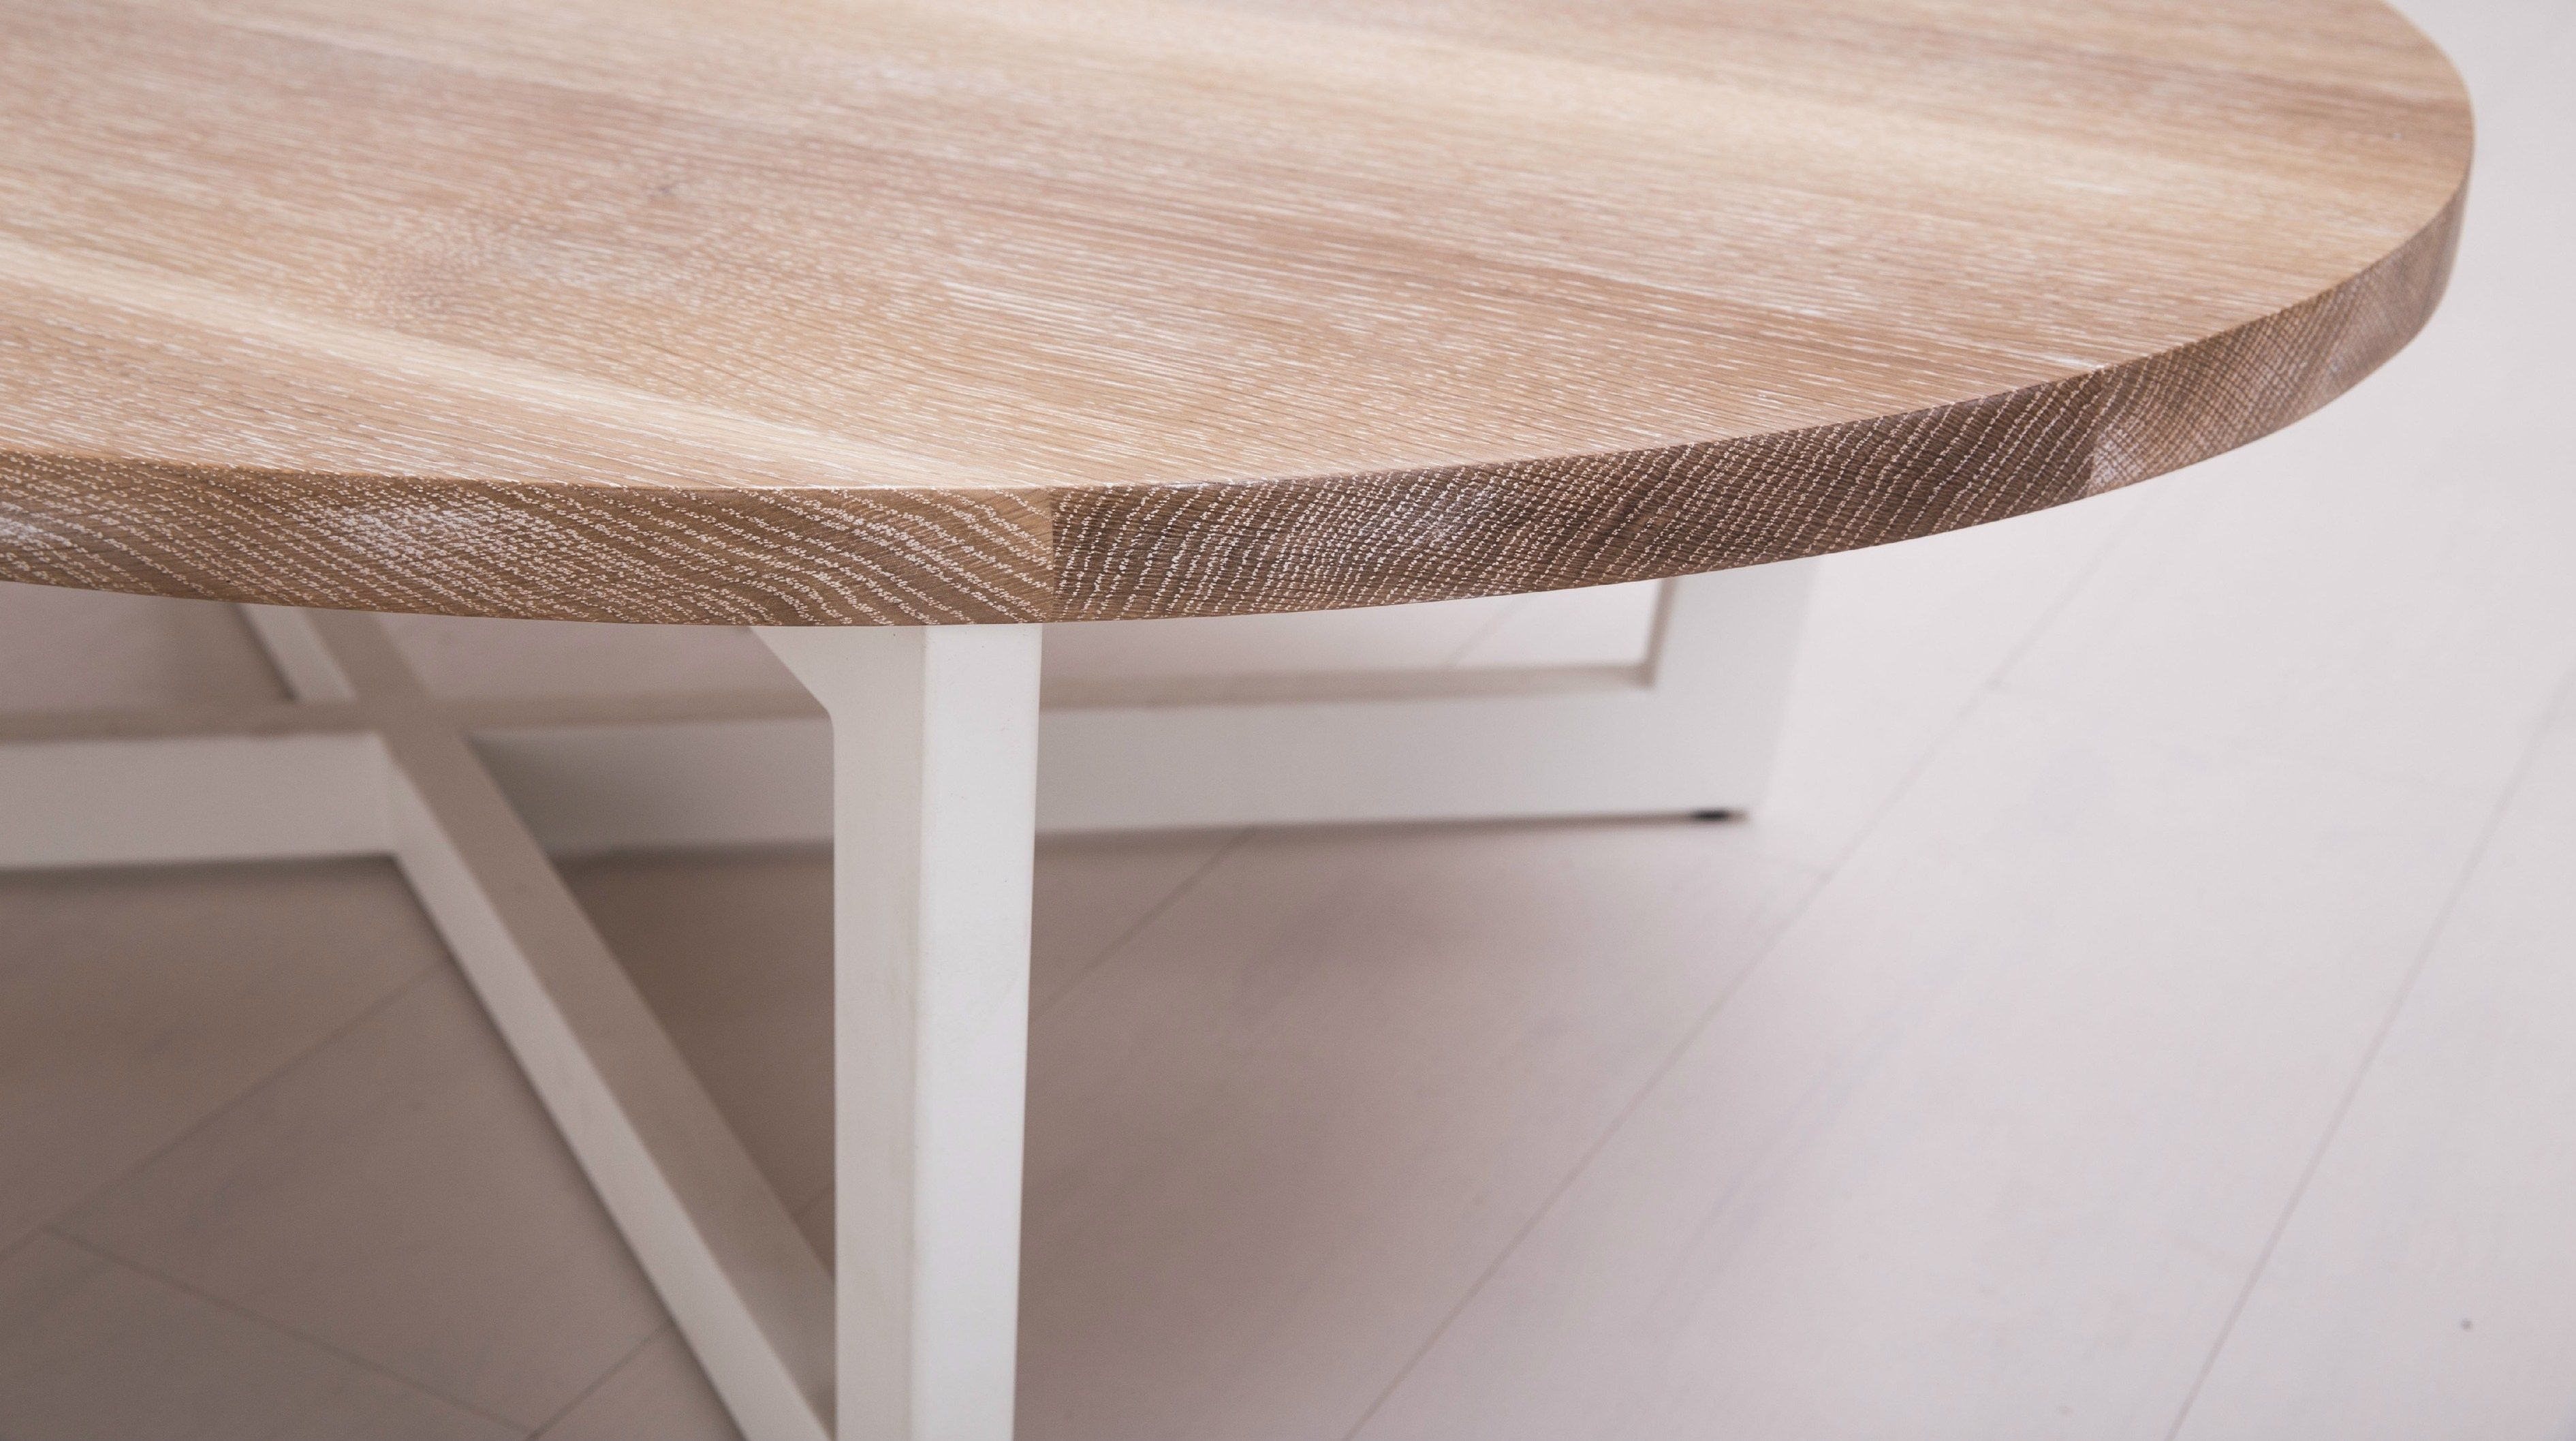 Oval Coffee Table Essentials Oval Coffee Table By Uhuru Design